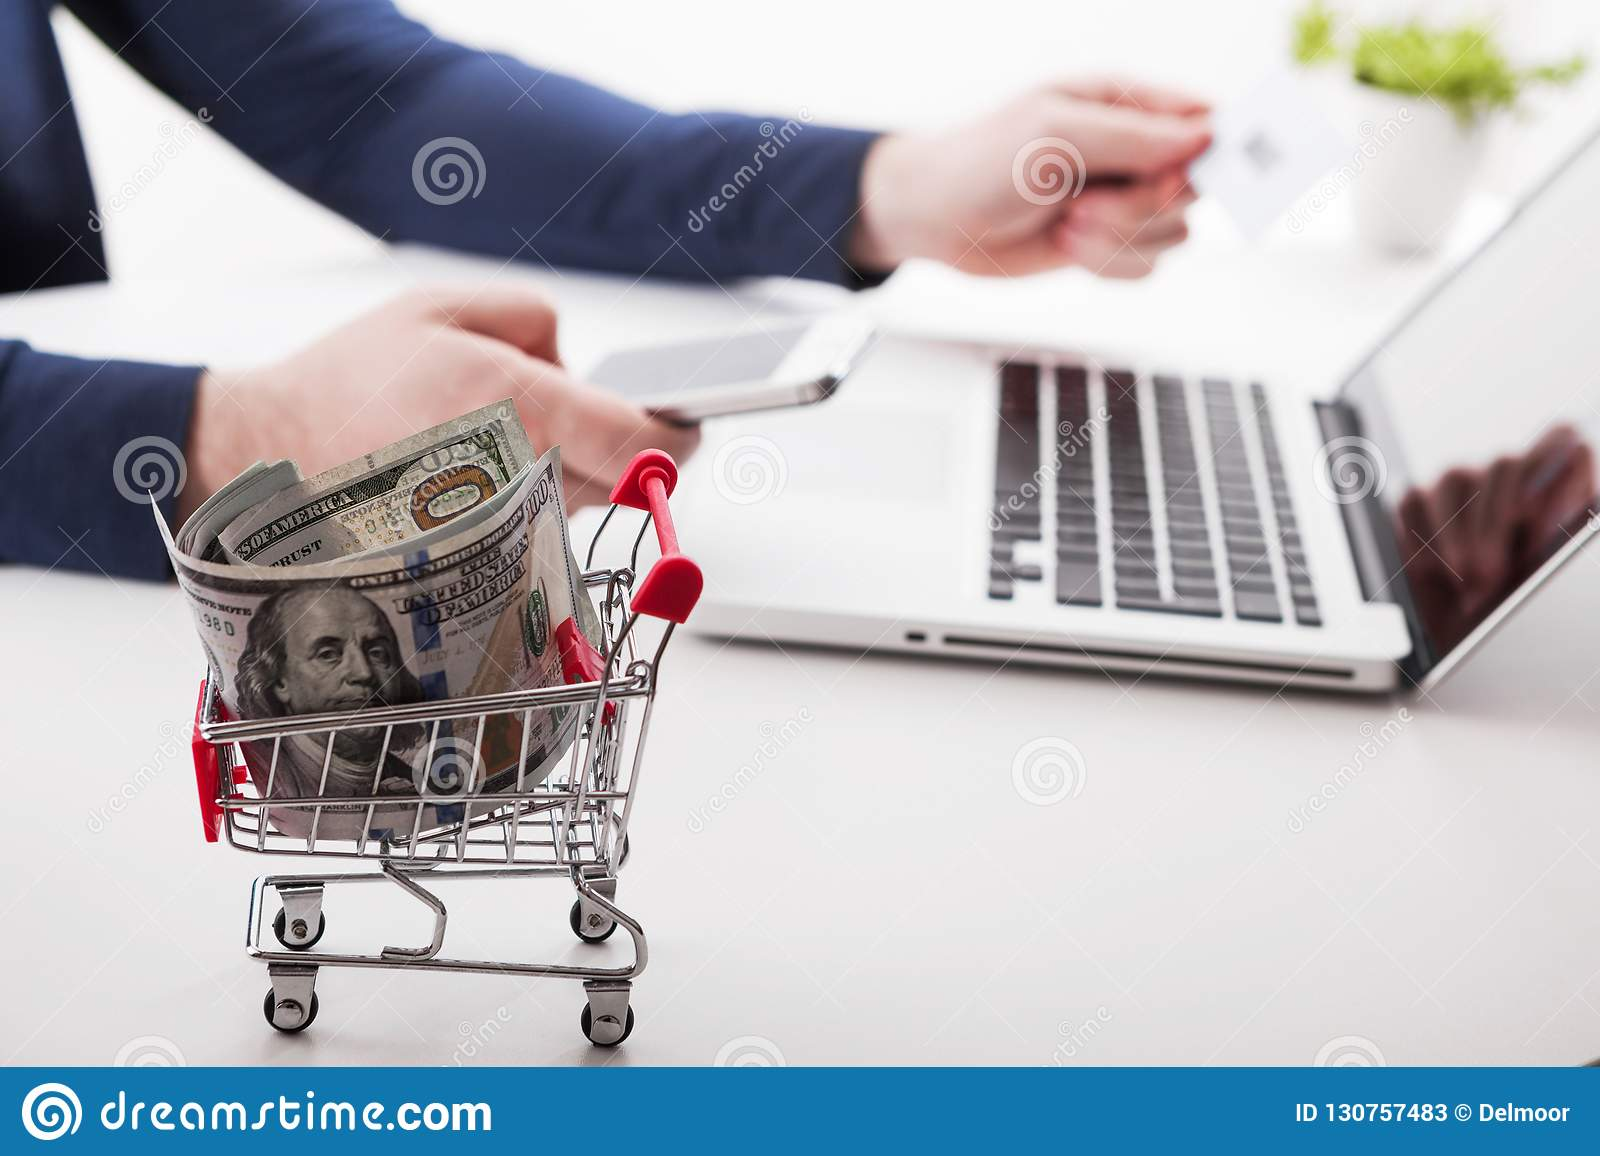 Social Network Diagram As Online Shopping Concept Stock Image